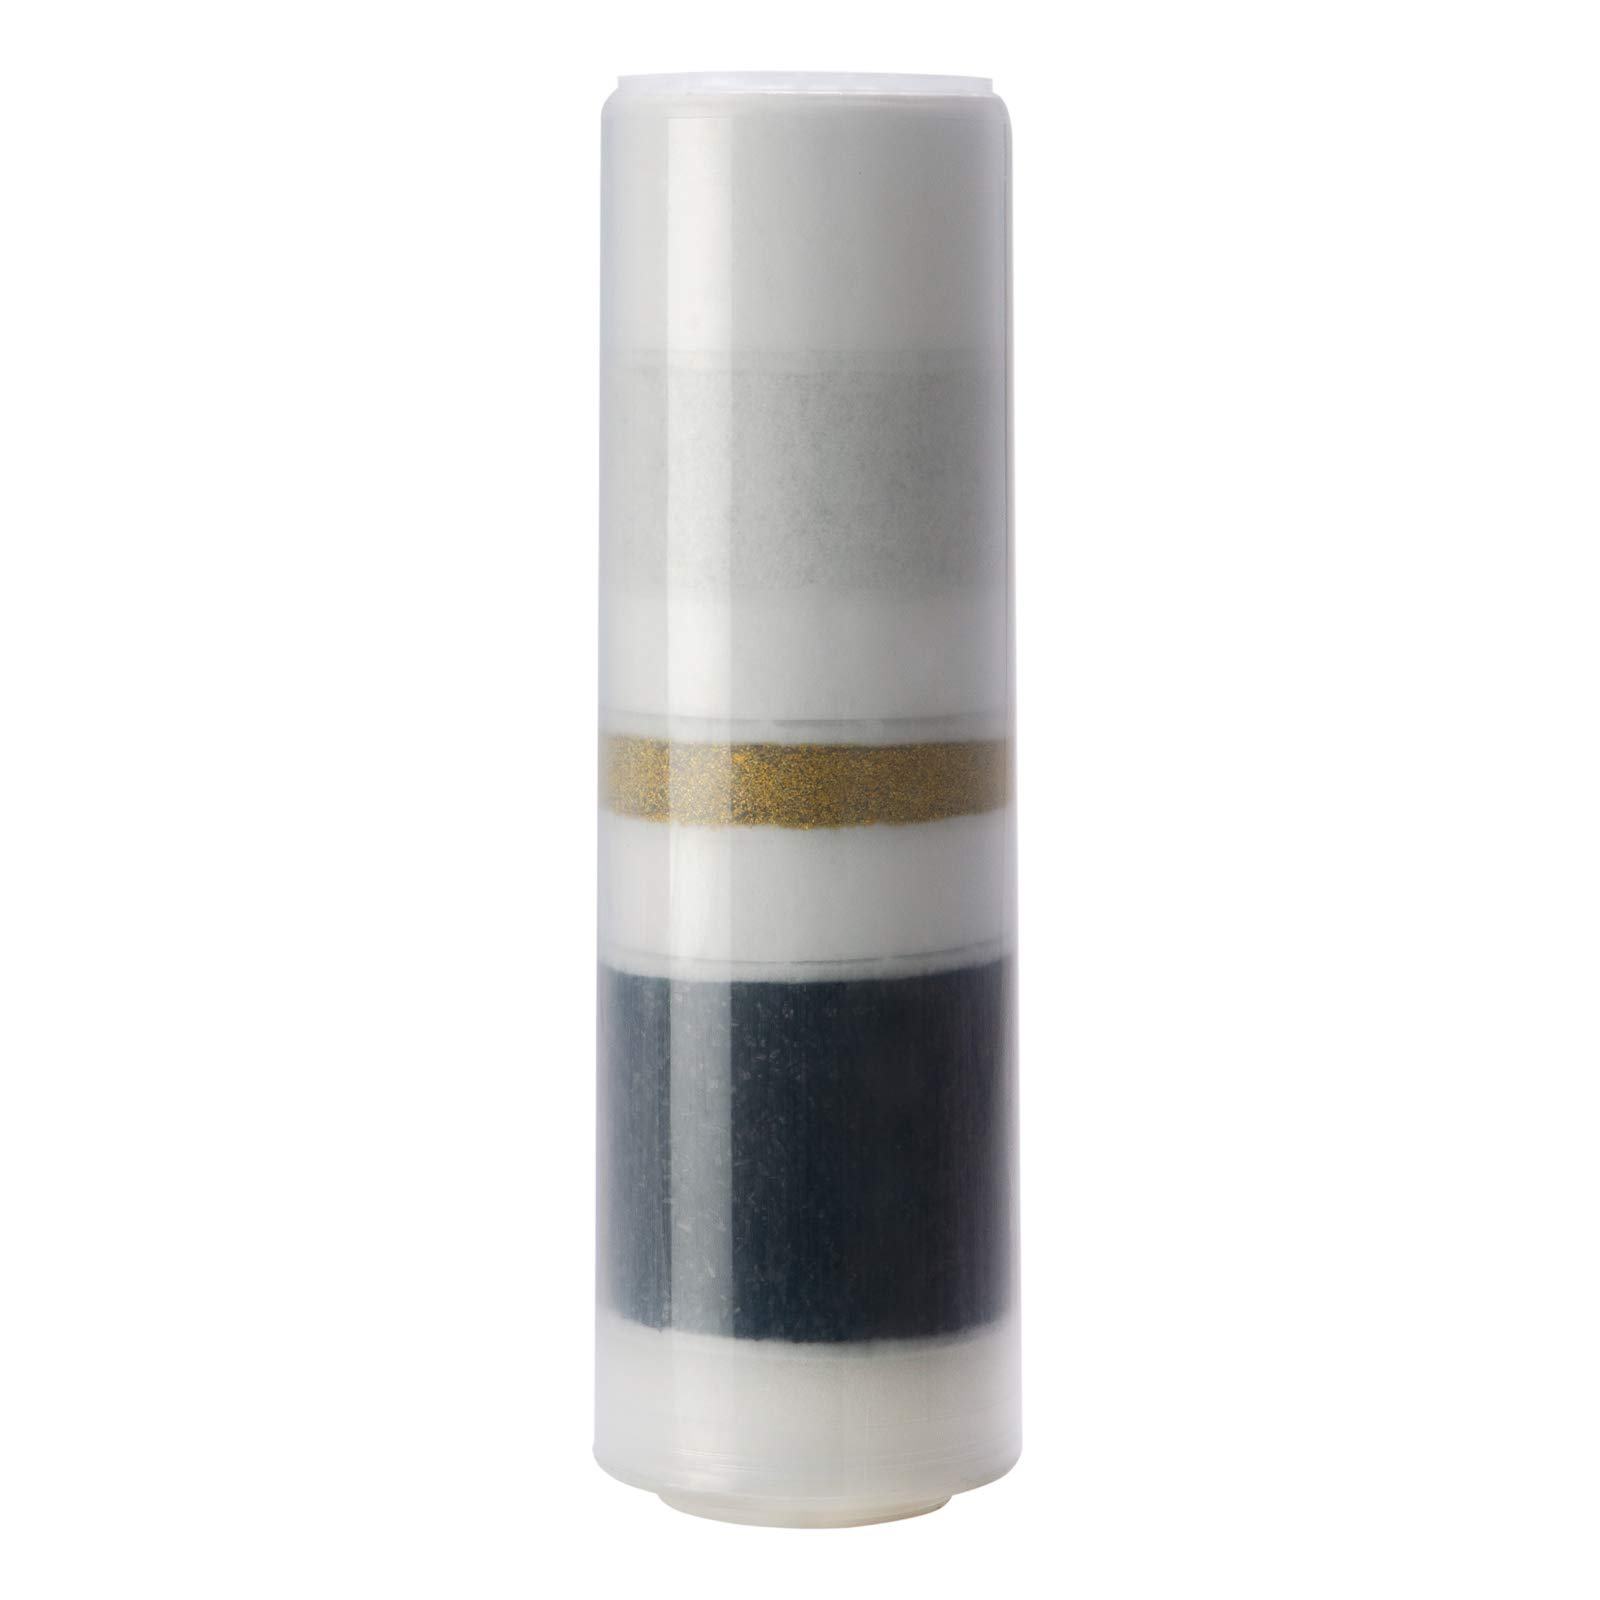 iSpring FCT10 Replacement Cartridge for iSpring CT10 Countertop Multi Filtration Drinking Water Filter Dispensers by iSpring